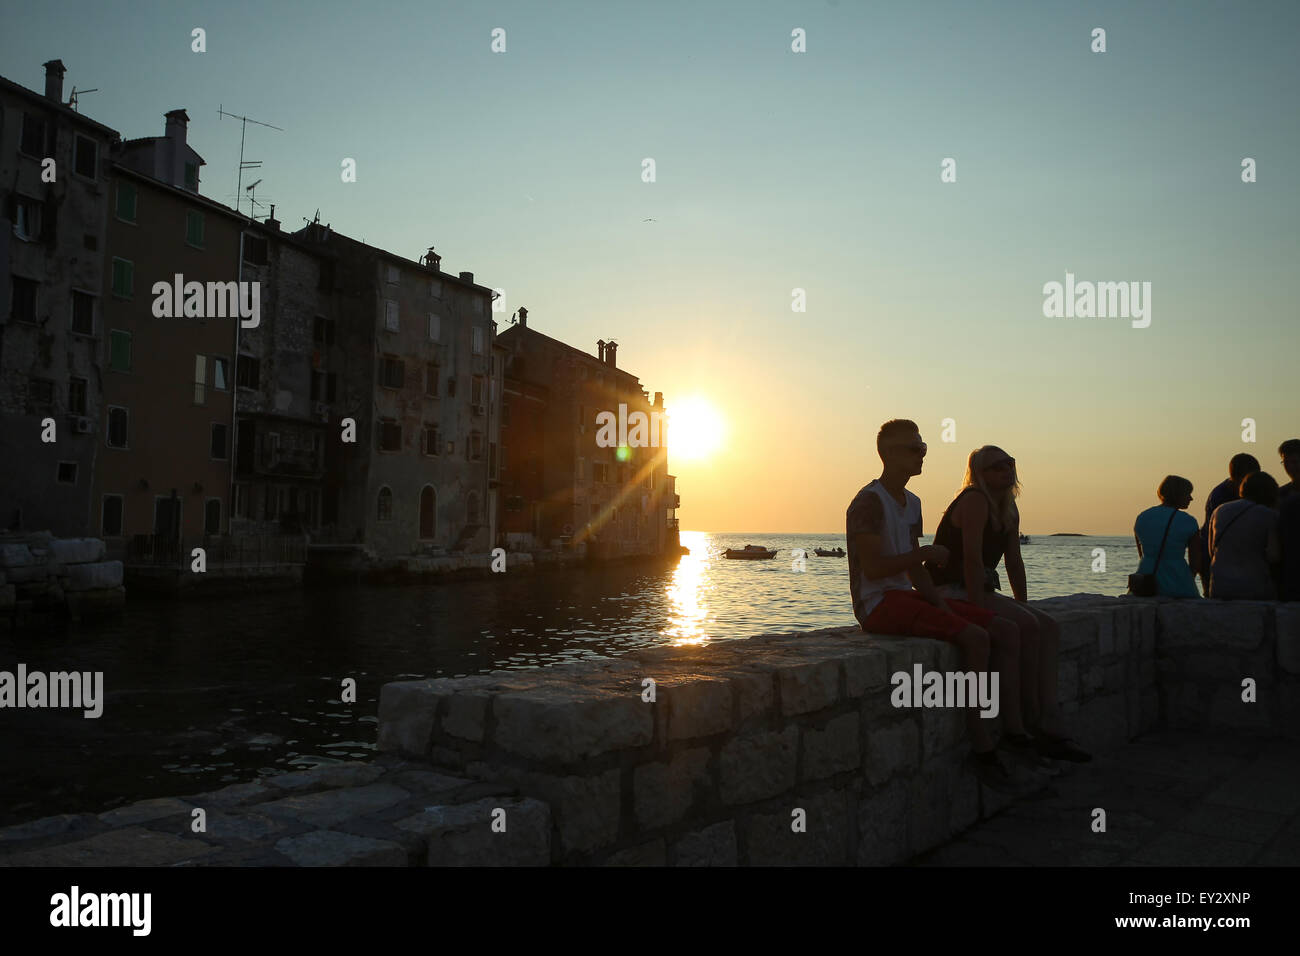 People sitting on the coast in front of the old city core buildings and watching the sunset in Rovinj, Croatia. - Stock Image